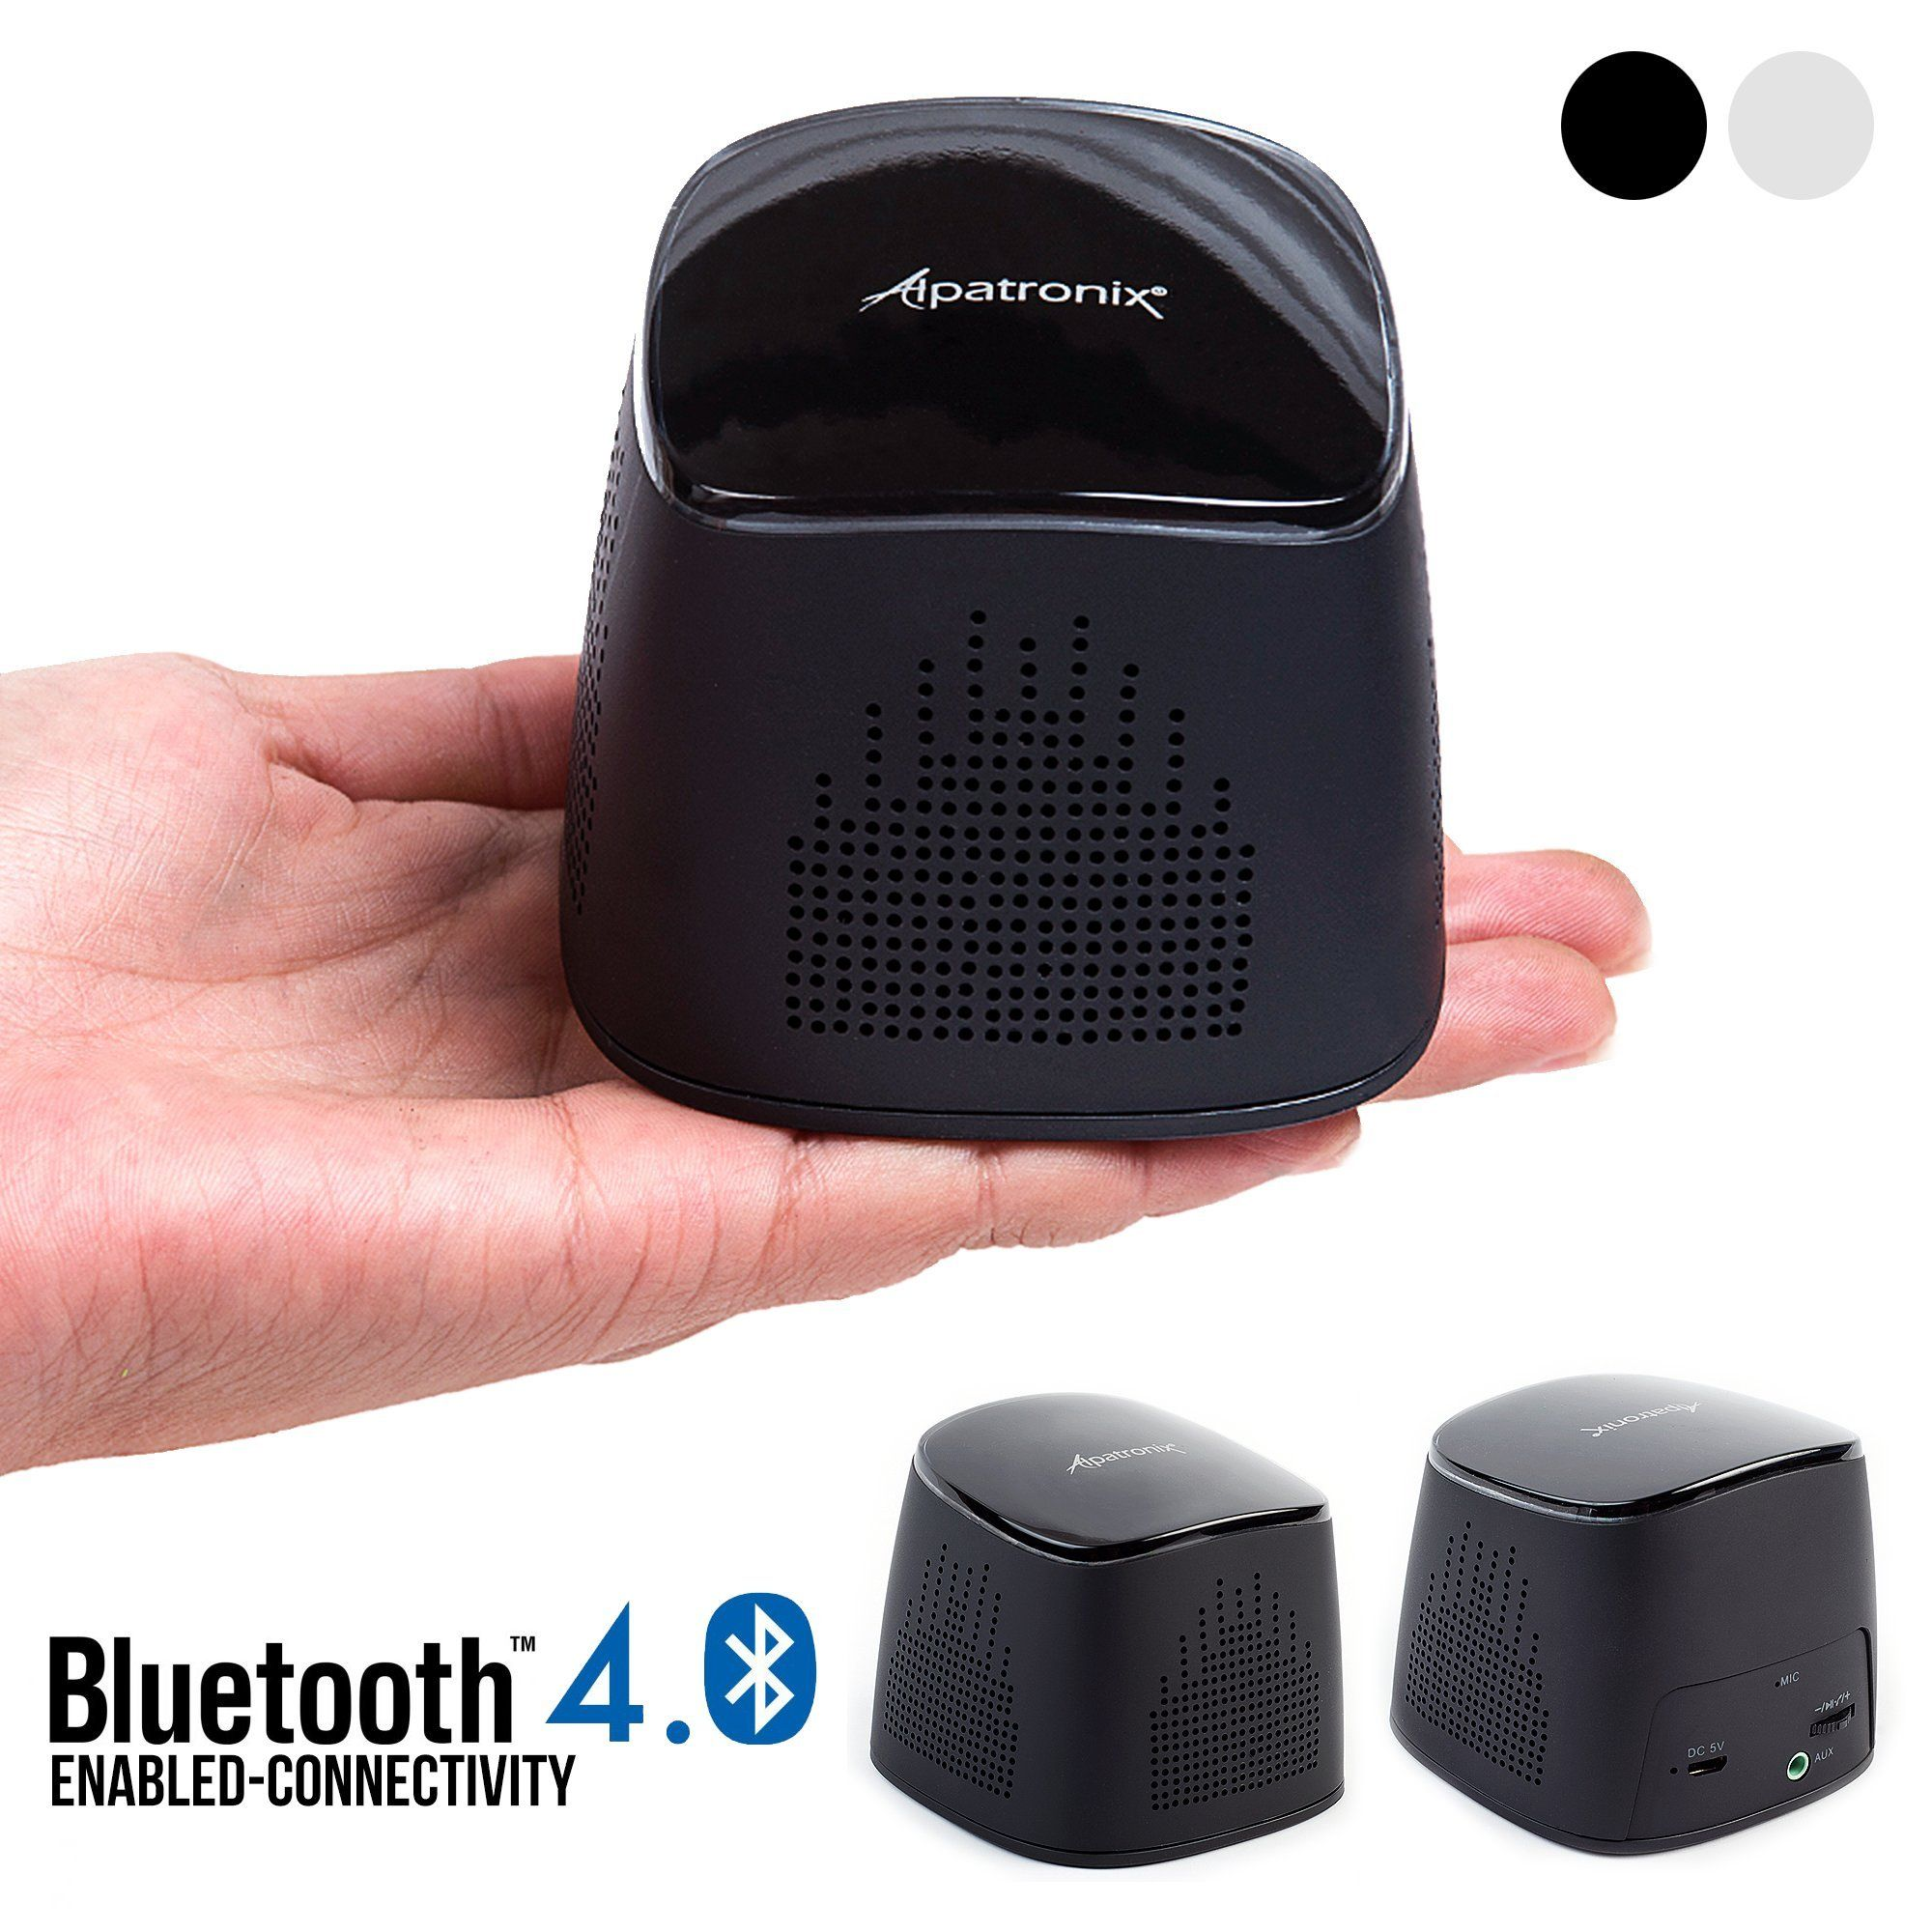 hight resolution of bluetooth speaker alpatronix ax310 ultra portable mini bluetooth wireless rechargeable speaker with mic